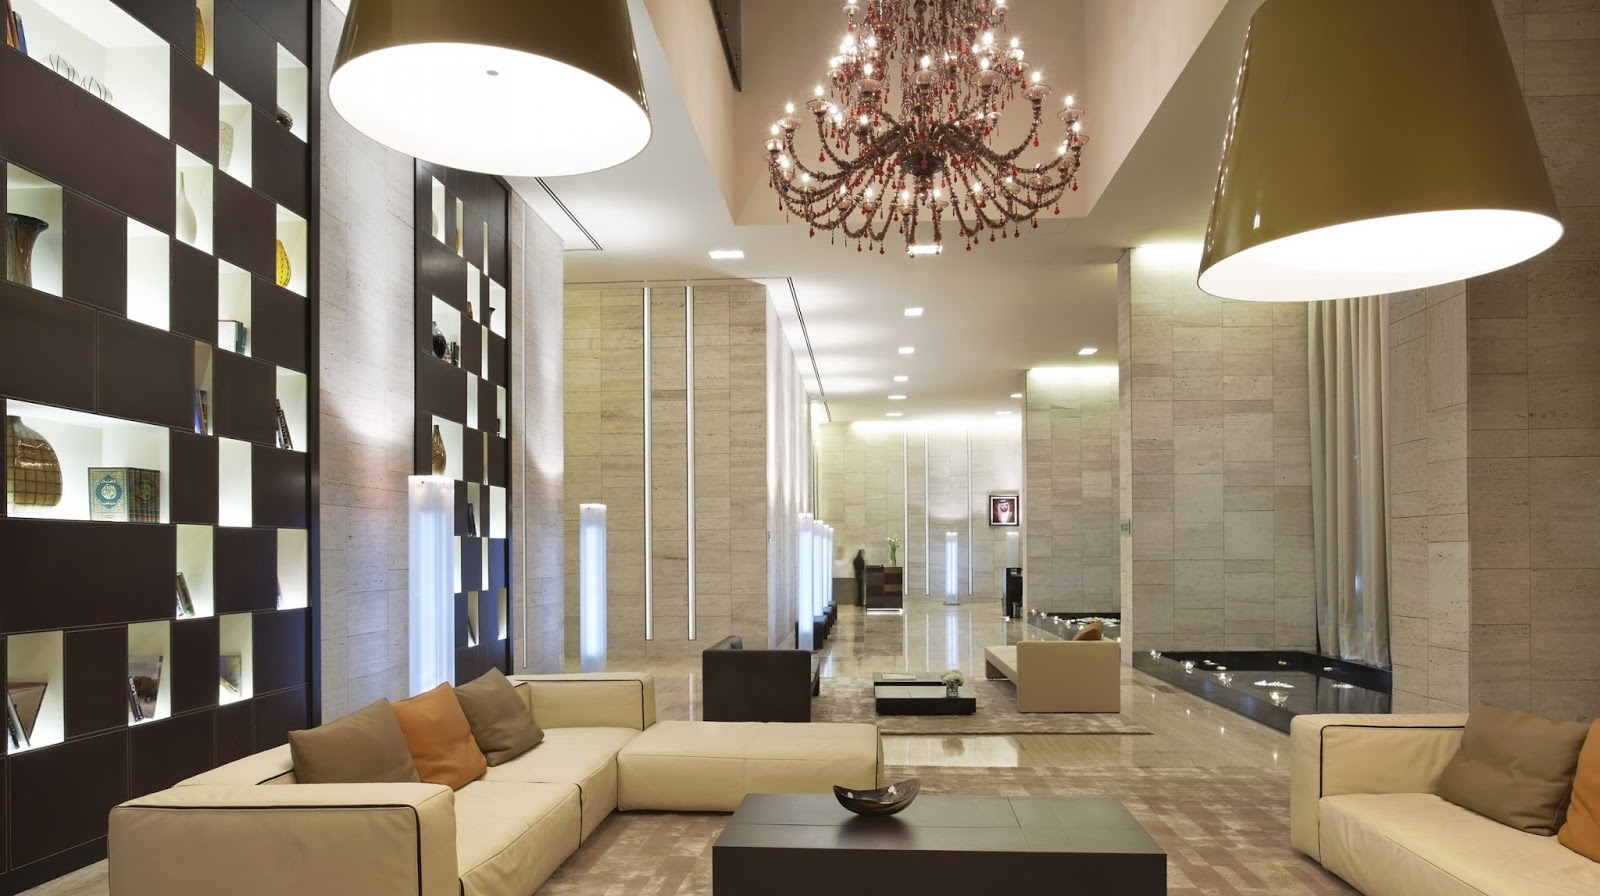 Best interior design companies and interior designers in dubai for Interior designer